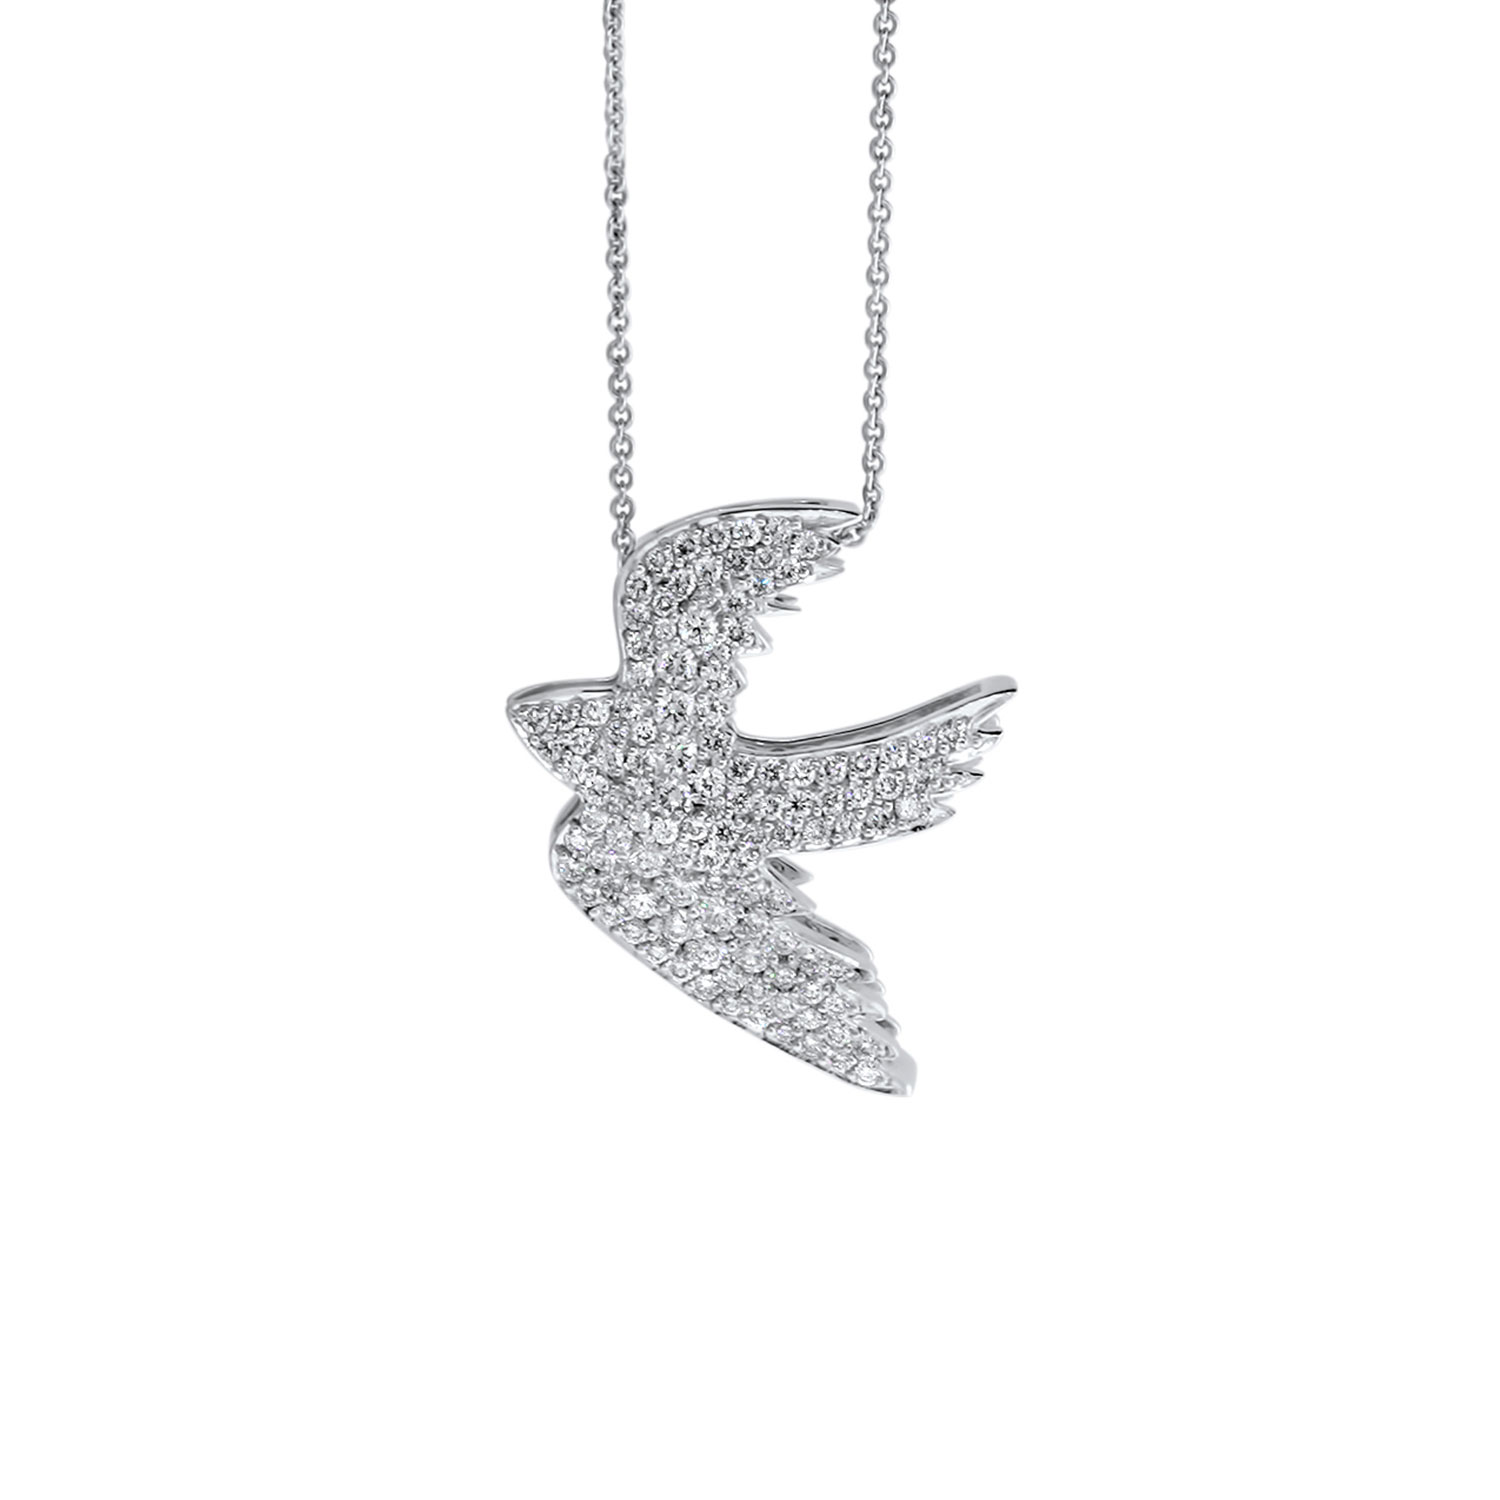 silver in jewelry lyst gallery sterling for dove miansai necklace men metallic pendant